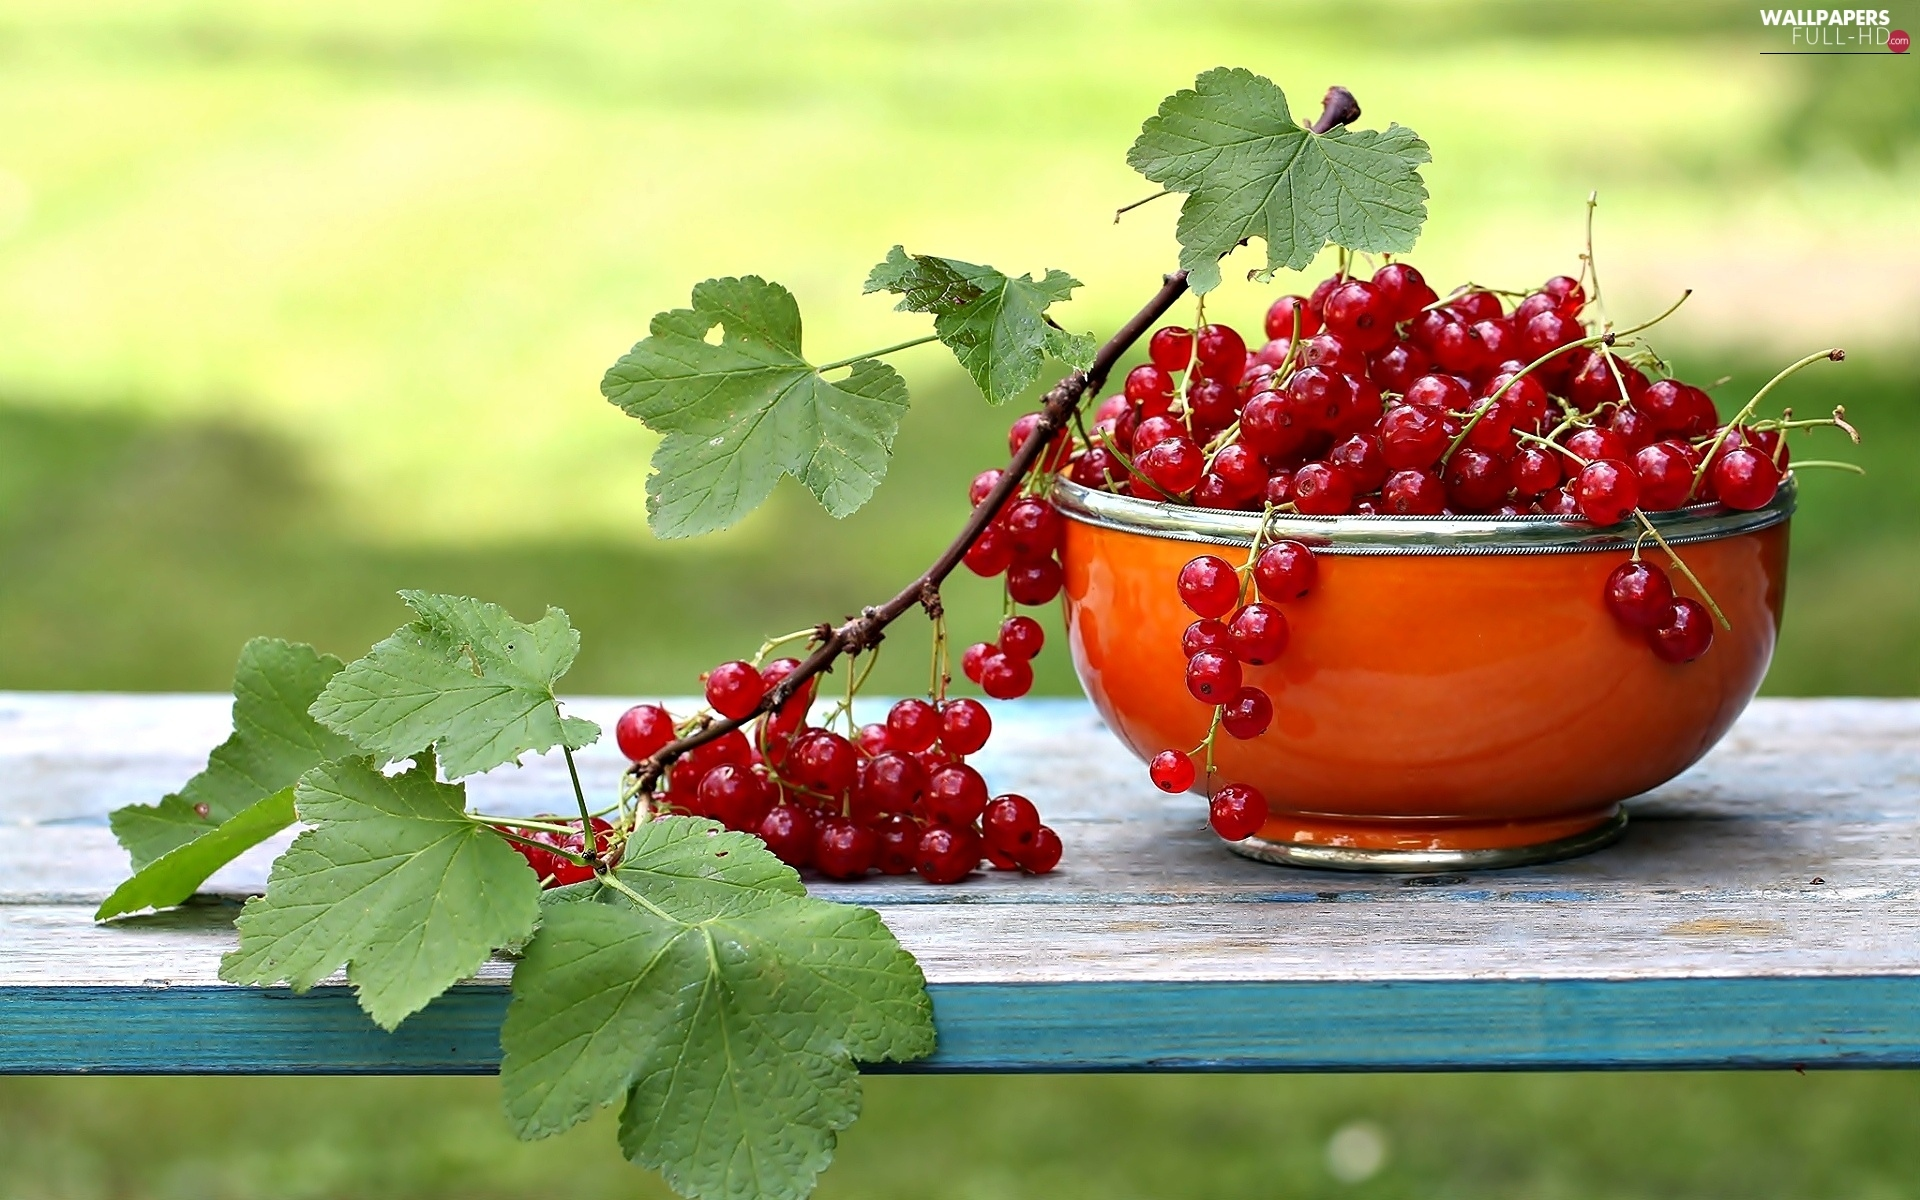 bowl, leaves, red hot, currant